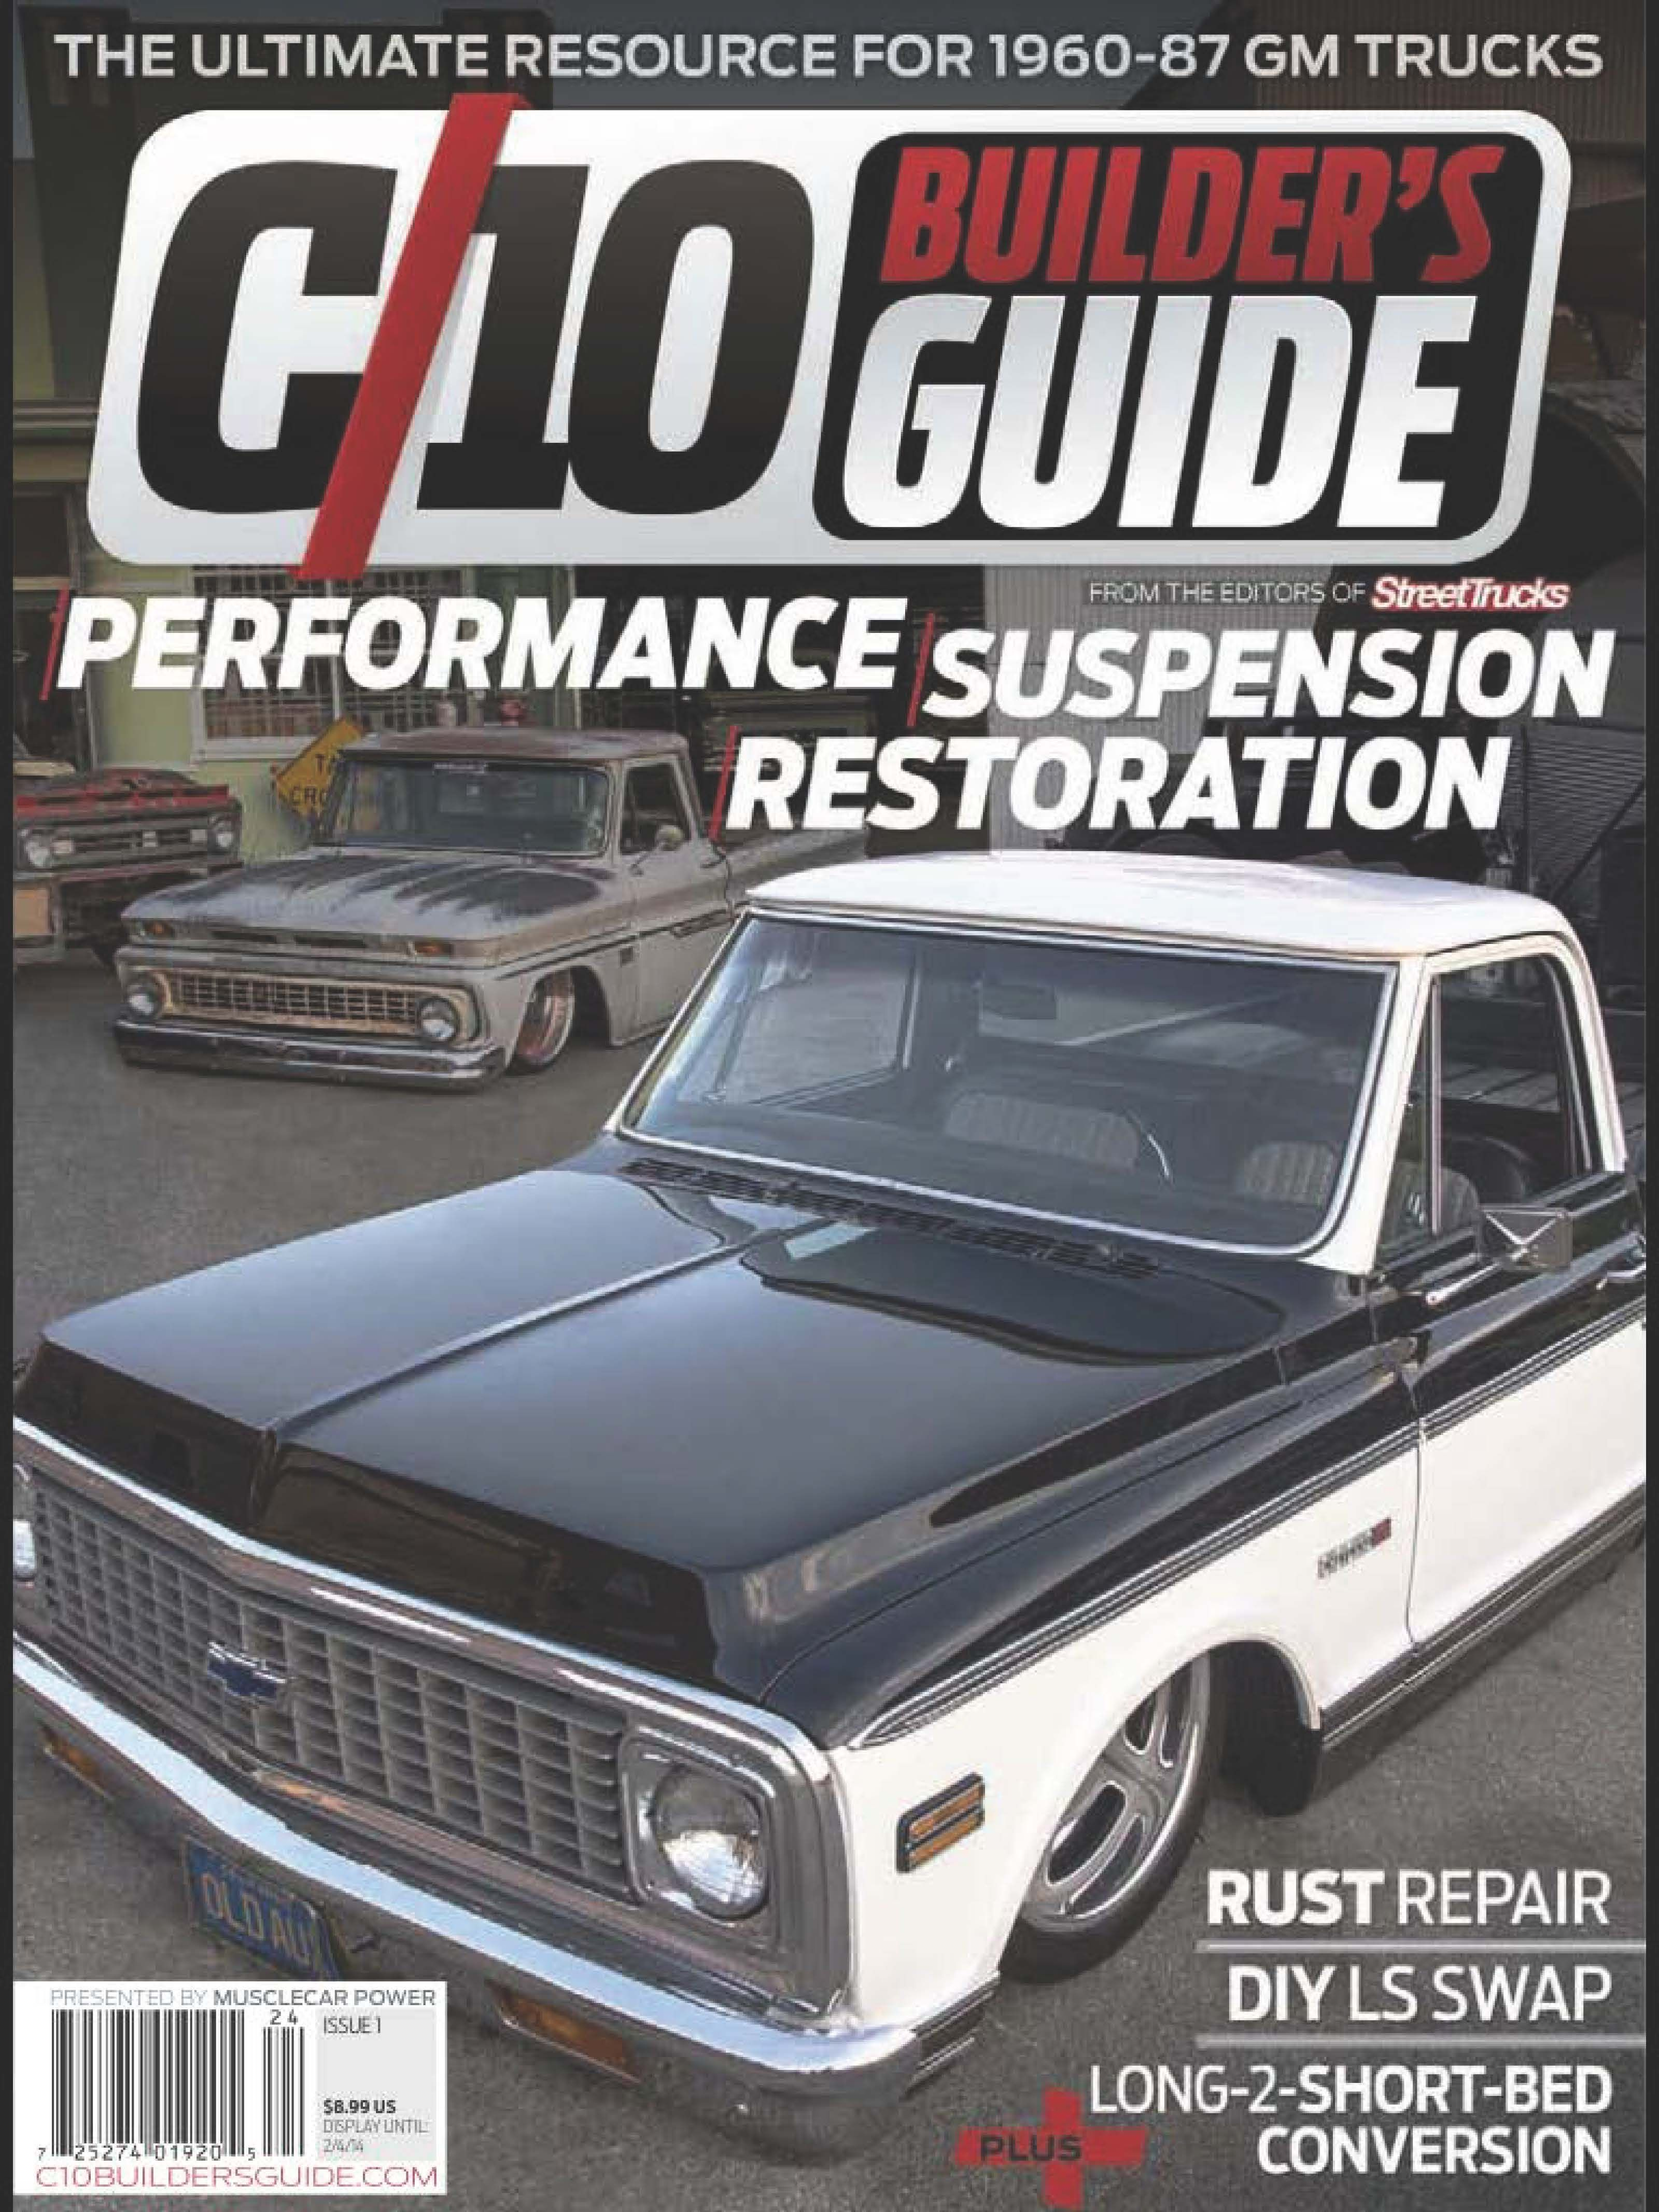 Street Trucks Magazine - Buy, Subscribe, Download and Read Street ...